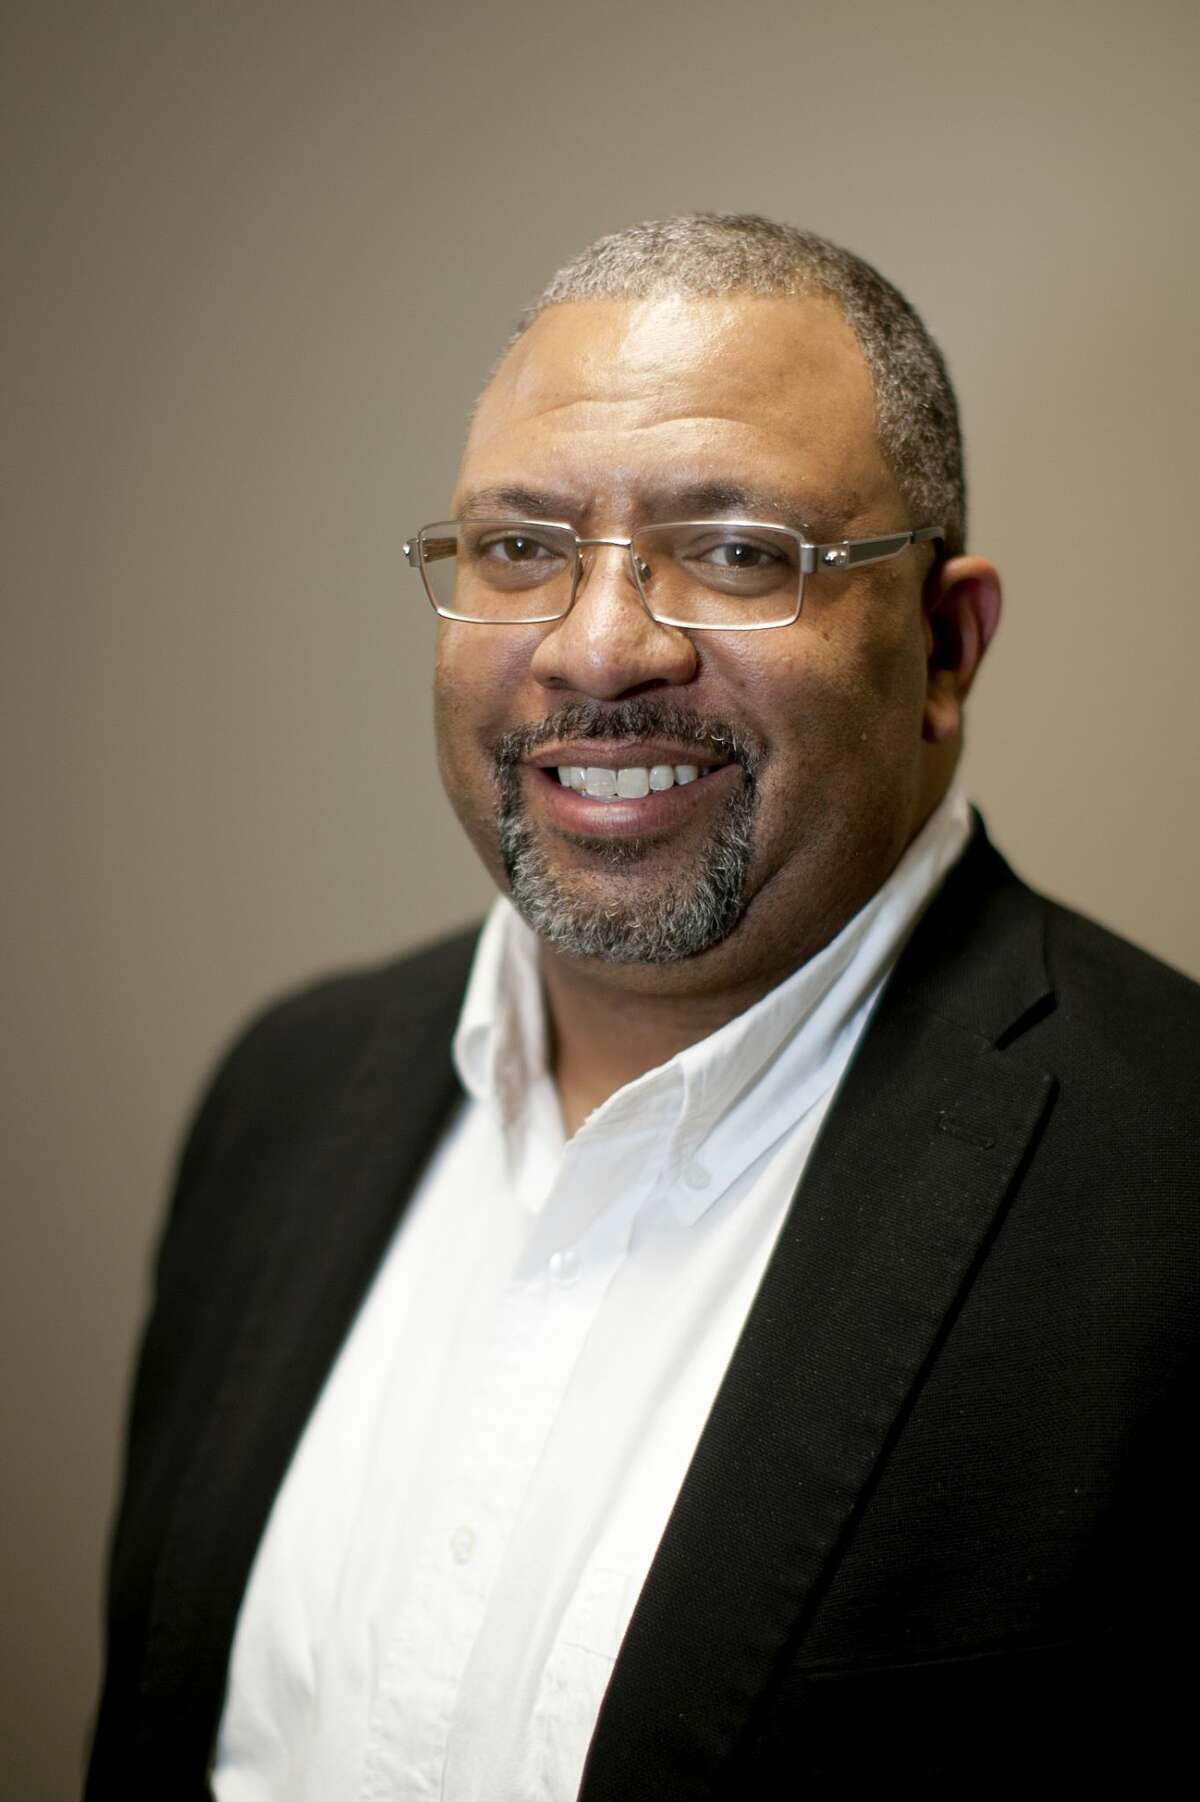 Educate Midland has evolved into an initiative made up of people committed to advancing student achievement from cradle to career, said Pervis Evans, executive director.